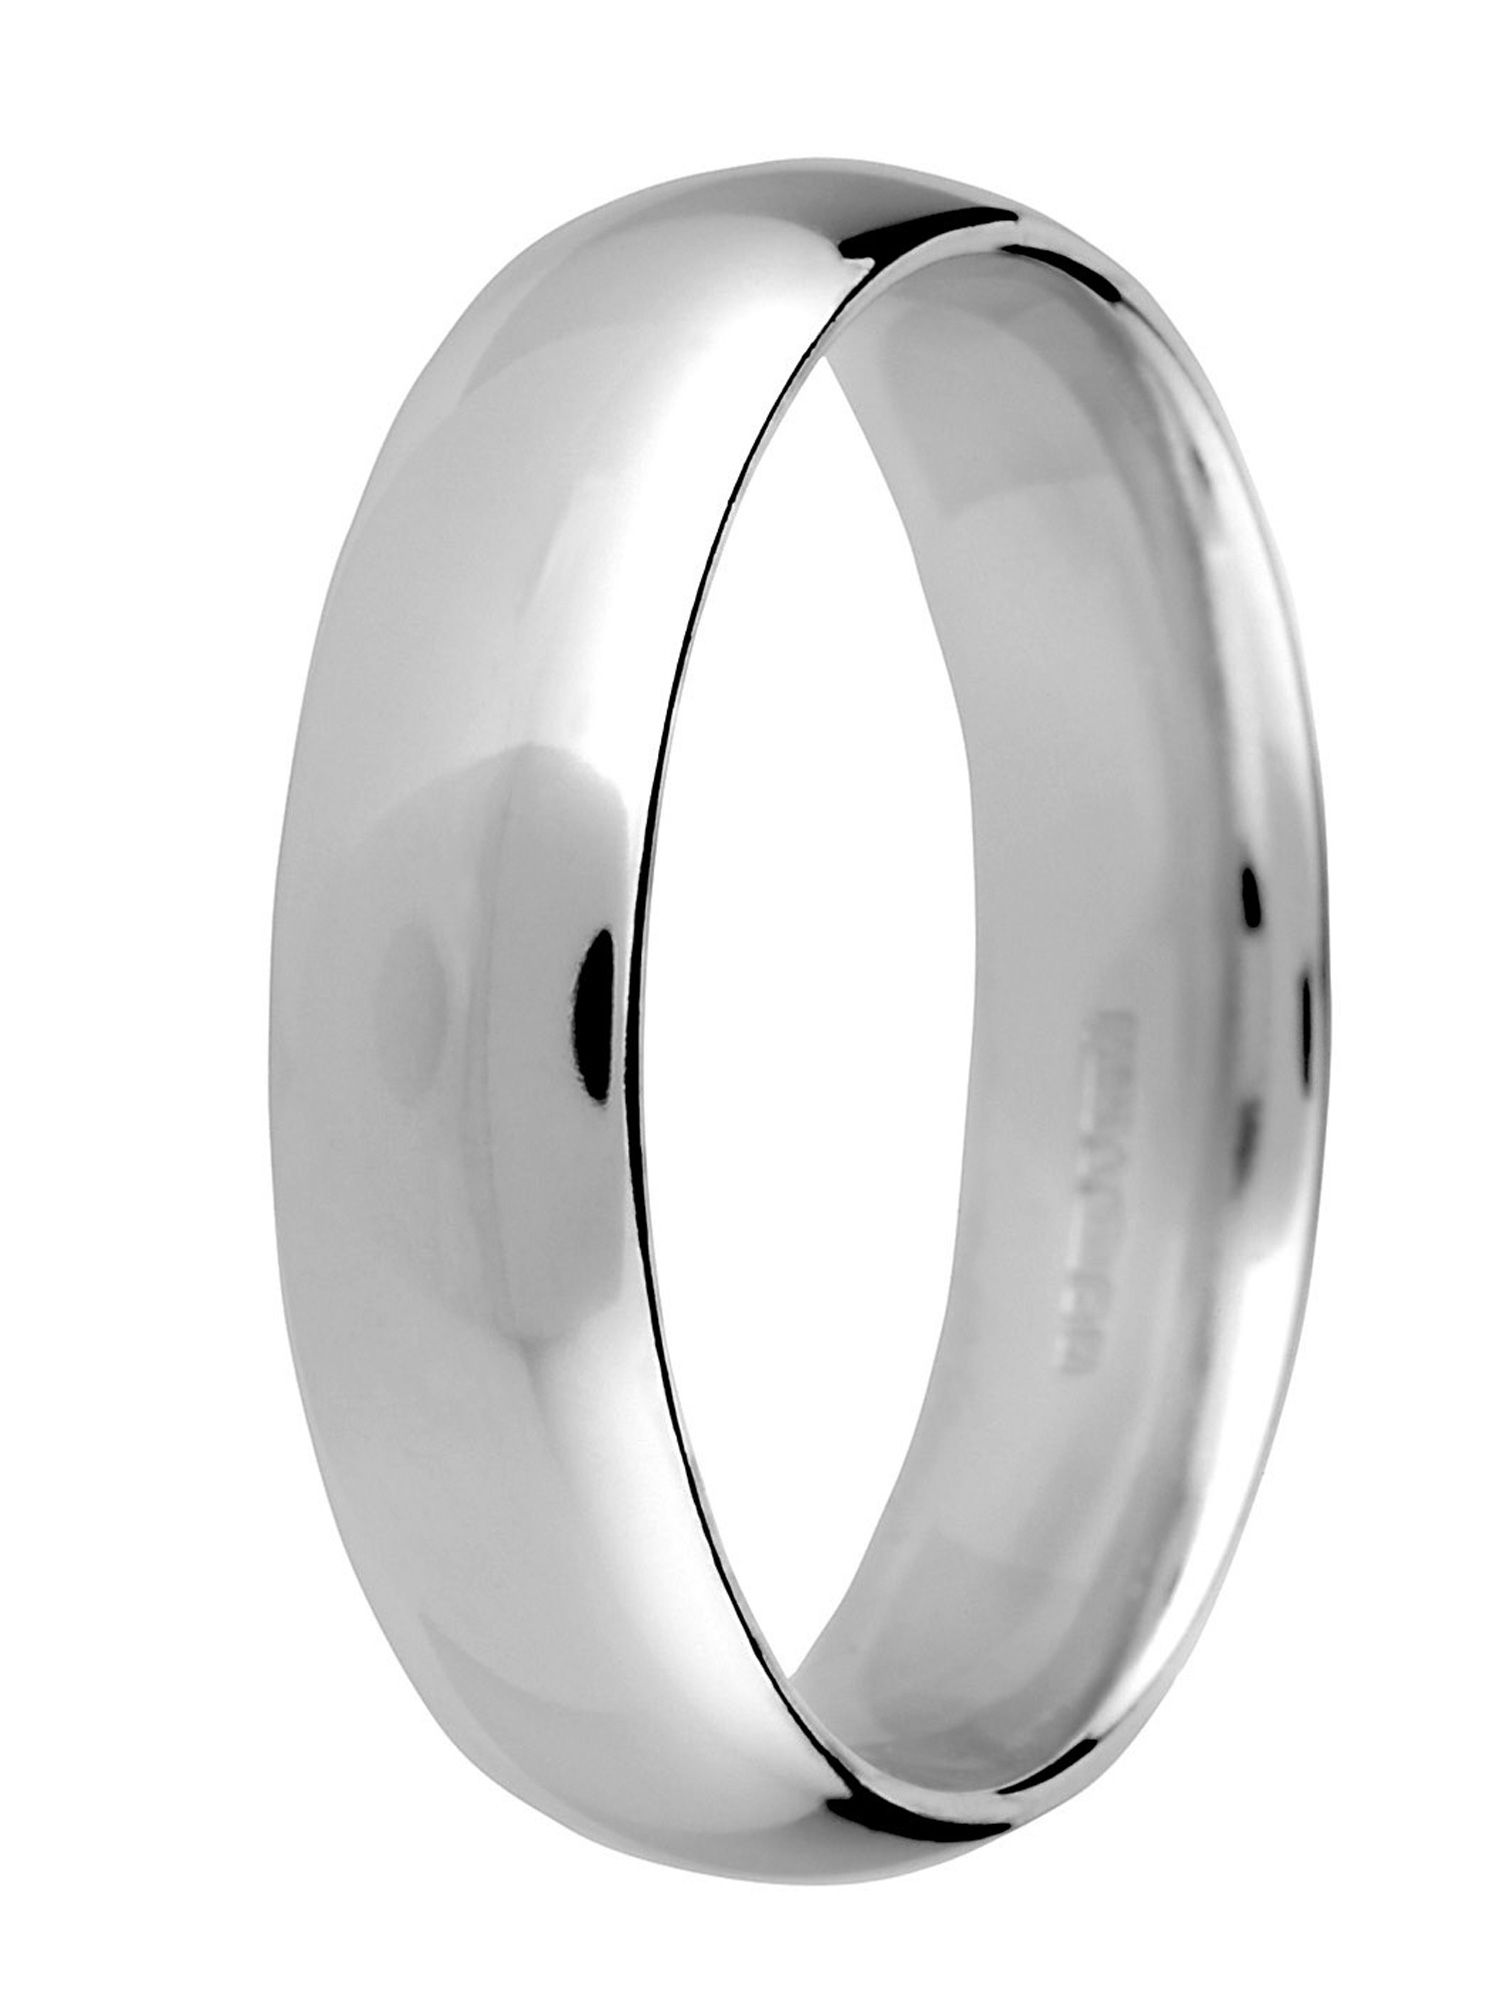 Goldsmiths Brides platinum heavy court 5mm wedding ring, Silver